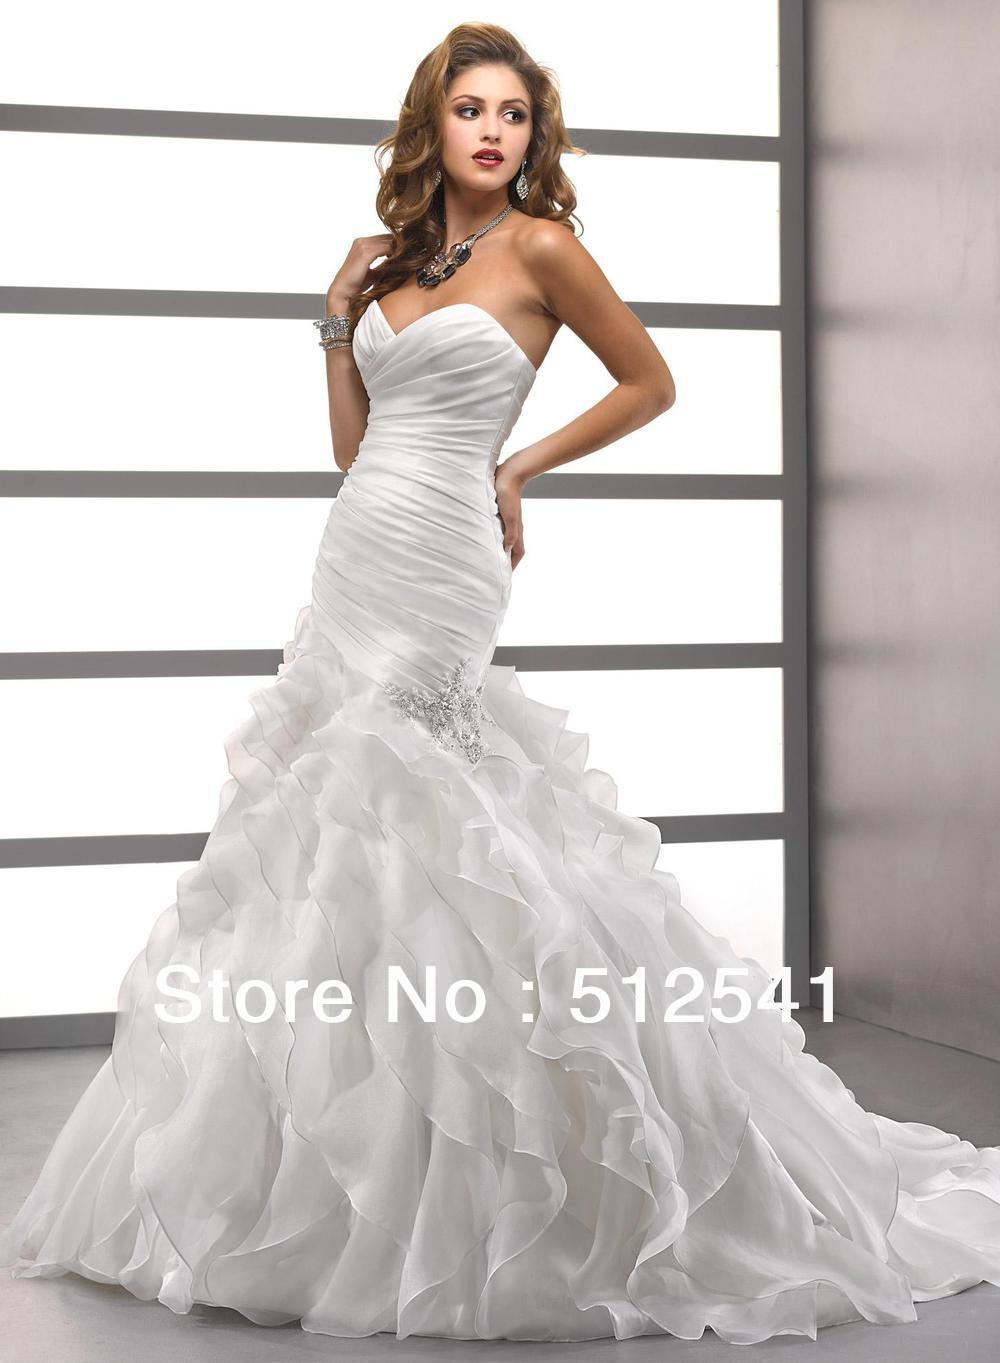 Wow Hot Ruffle Ivory Vestido De Noiva Sweetheart Mermaid Trumpet Wedding Dresses 2018 Sweep Train Beaded Organza Bridal Gowns